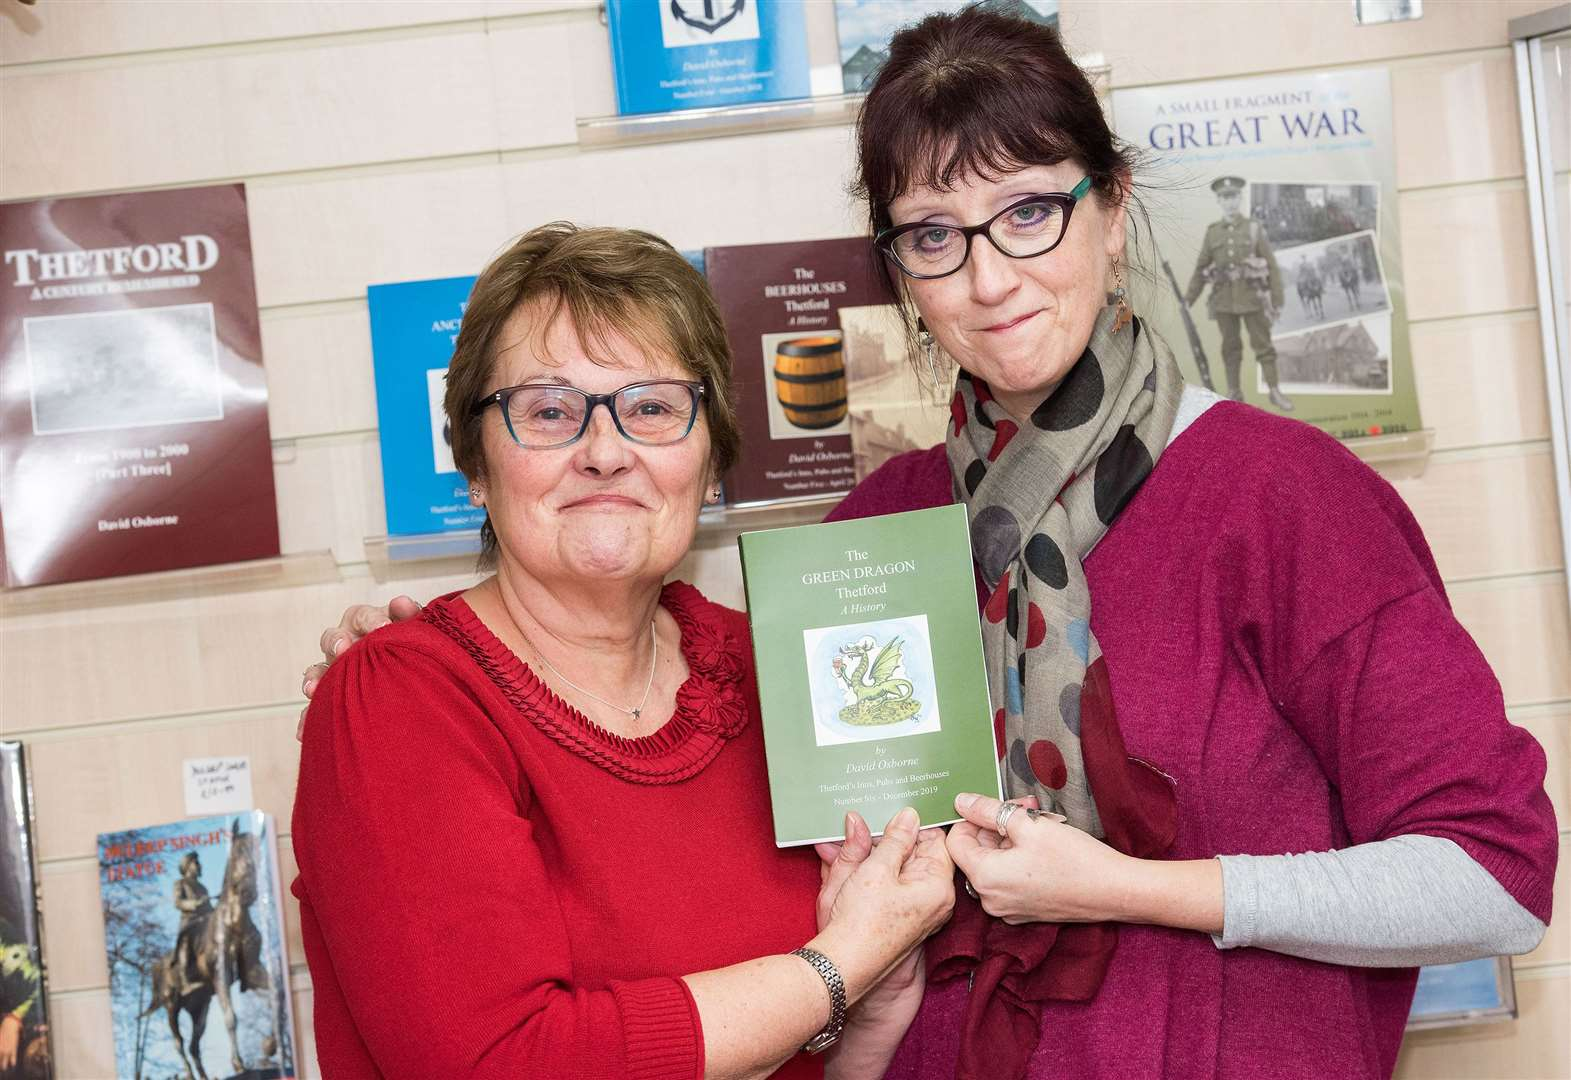 Thetford historian remembered with book publishing